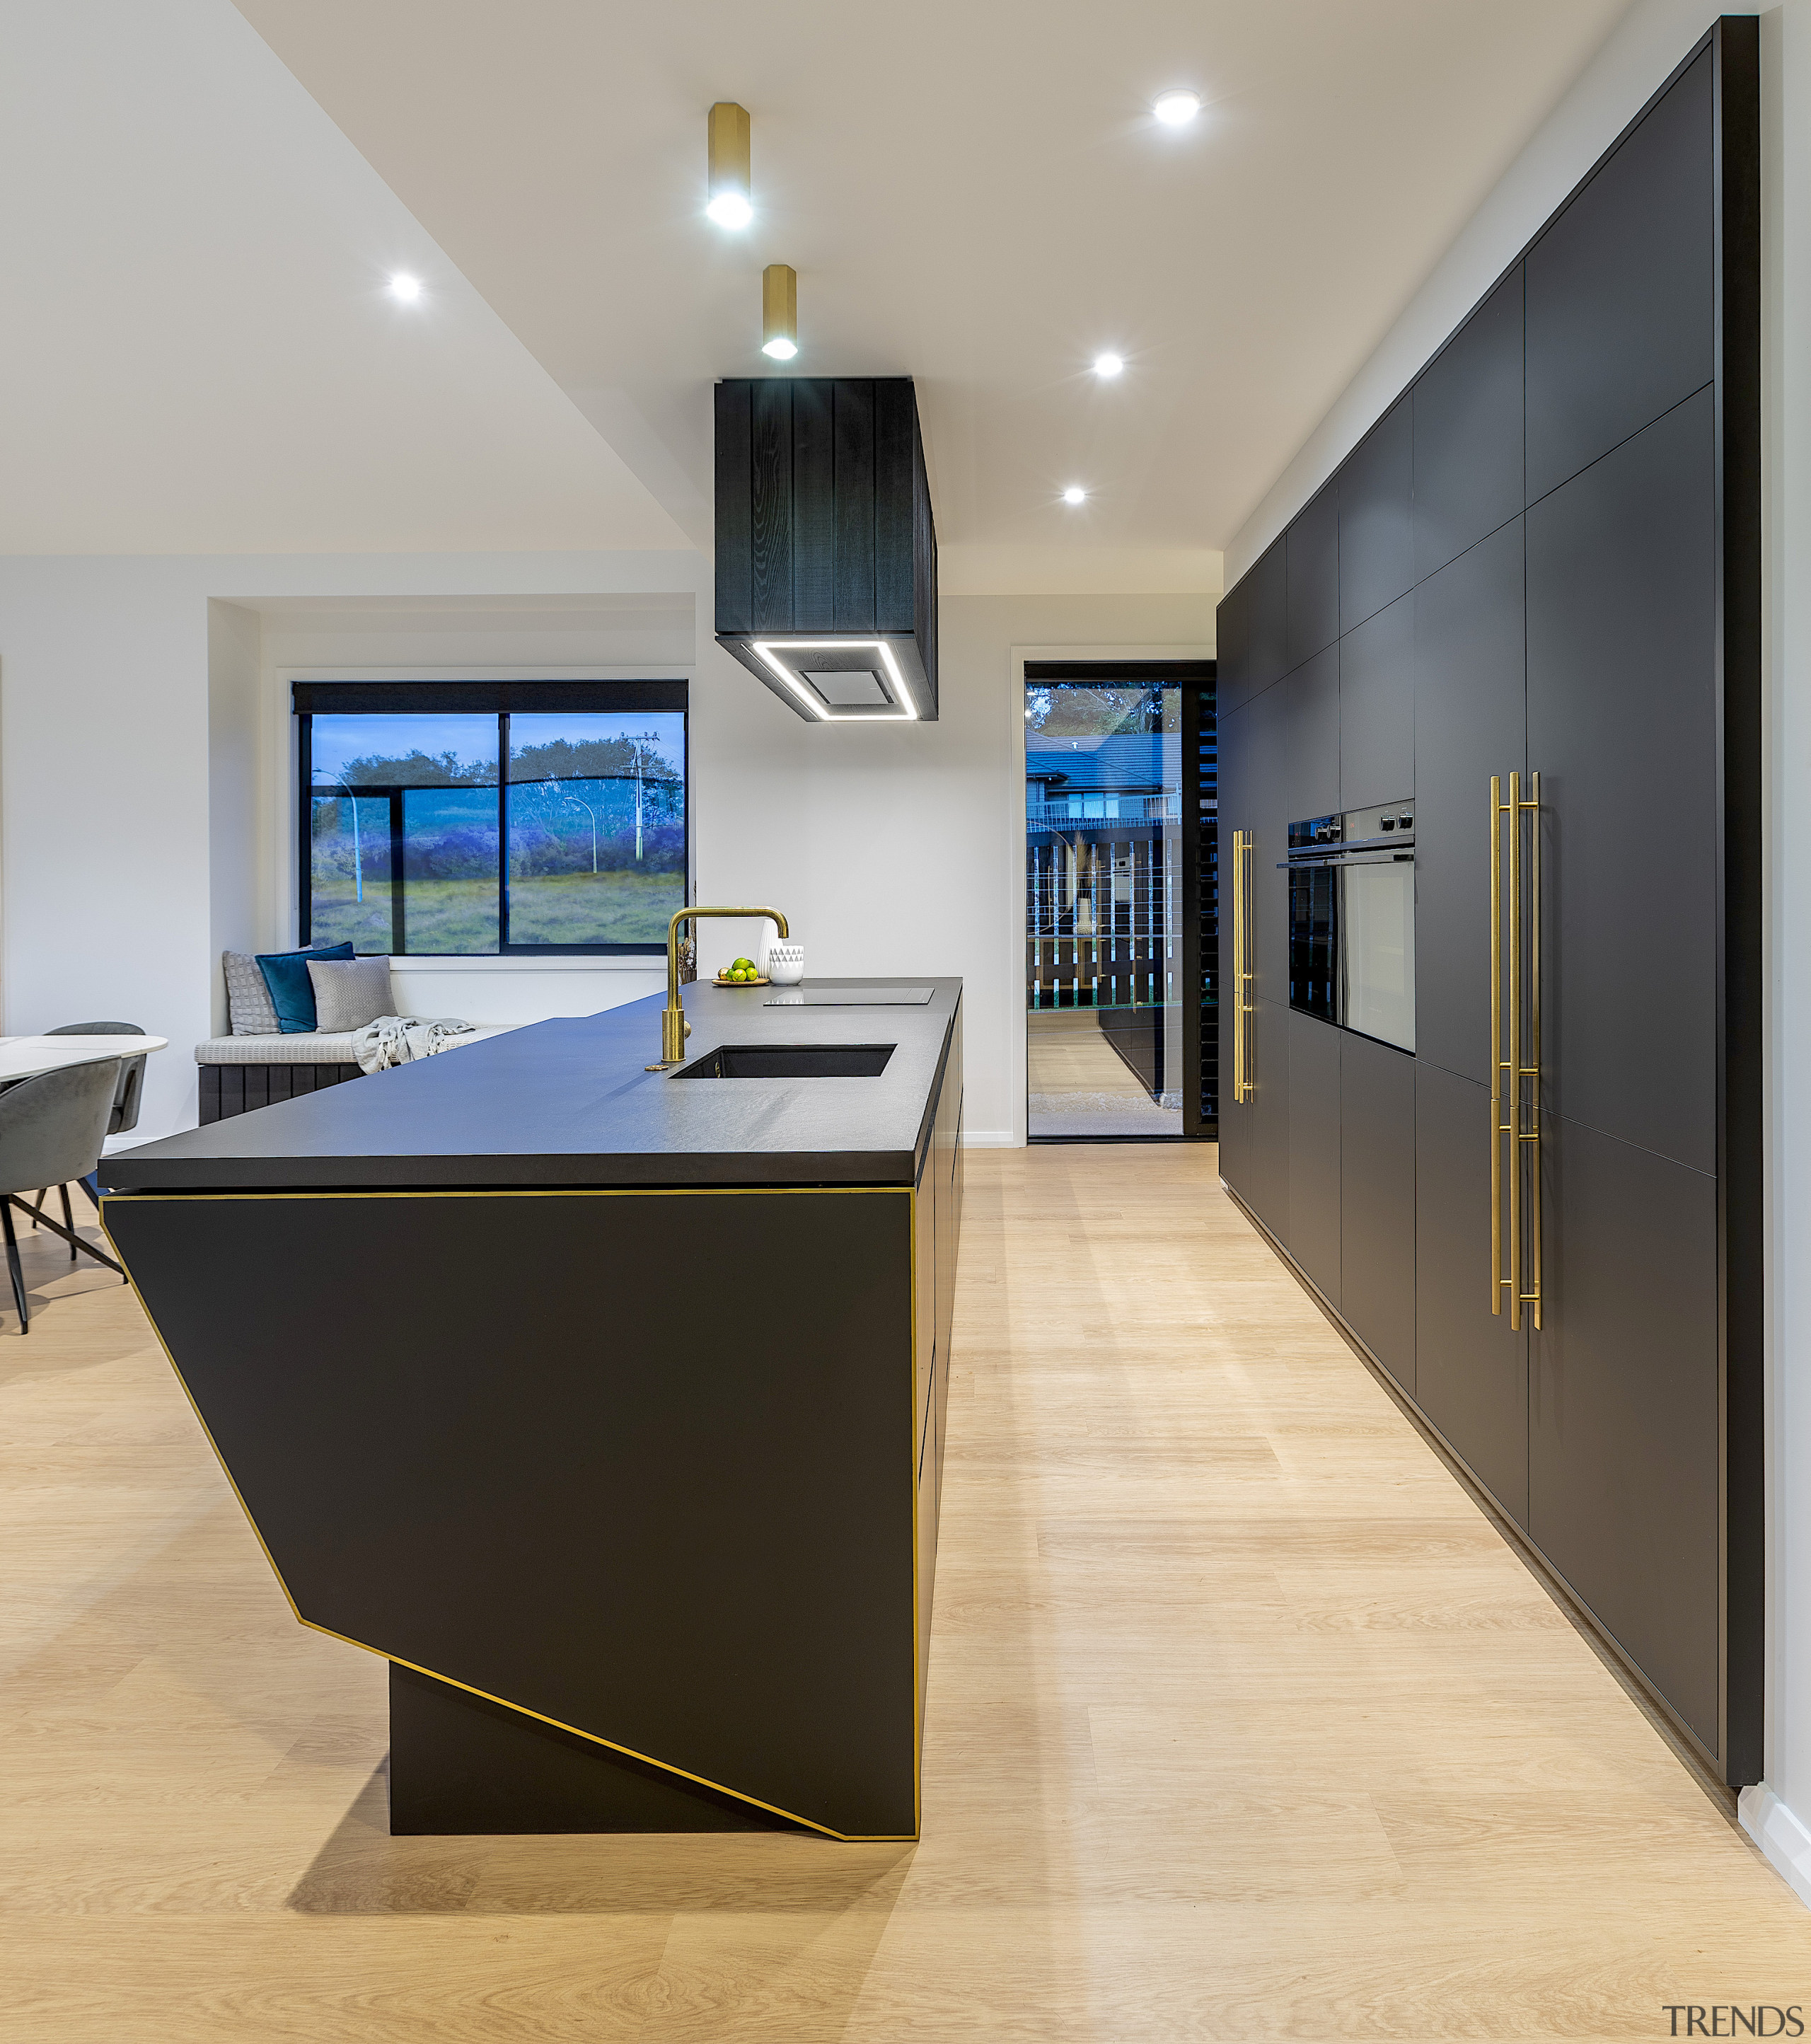 Brass fittings offer golden counterpoints in this dark